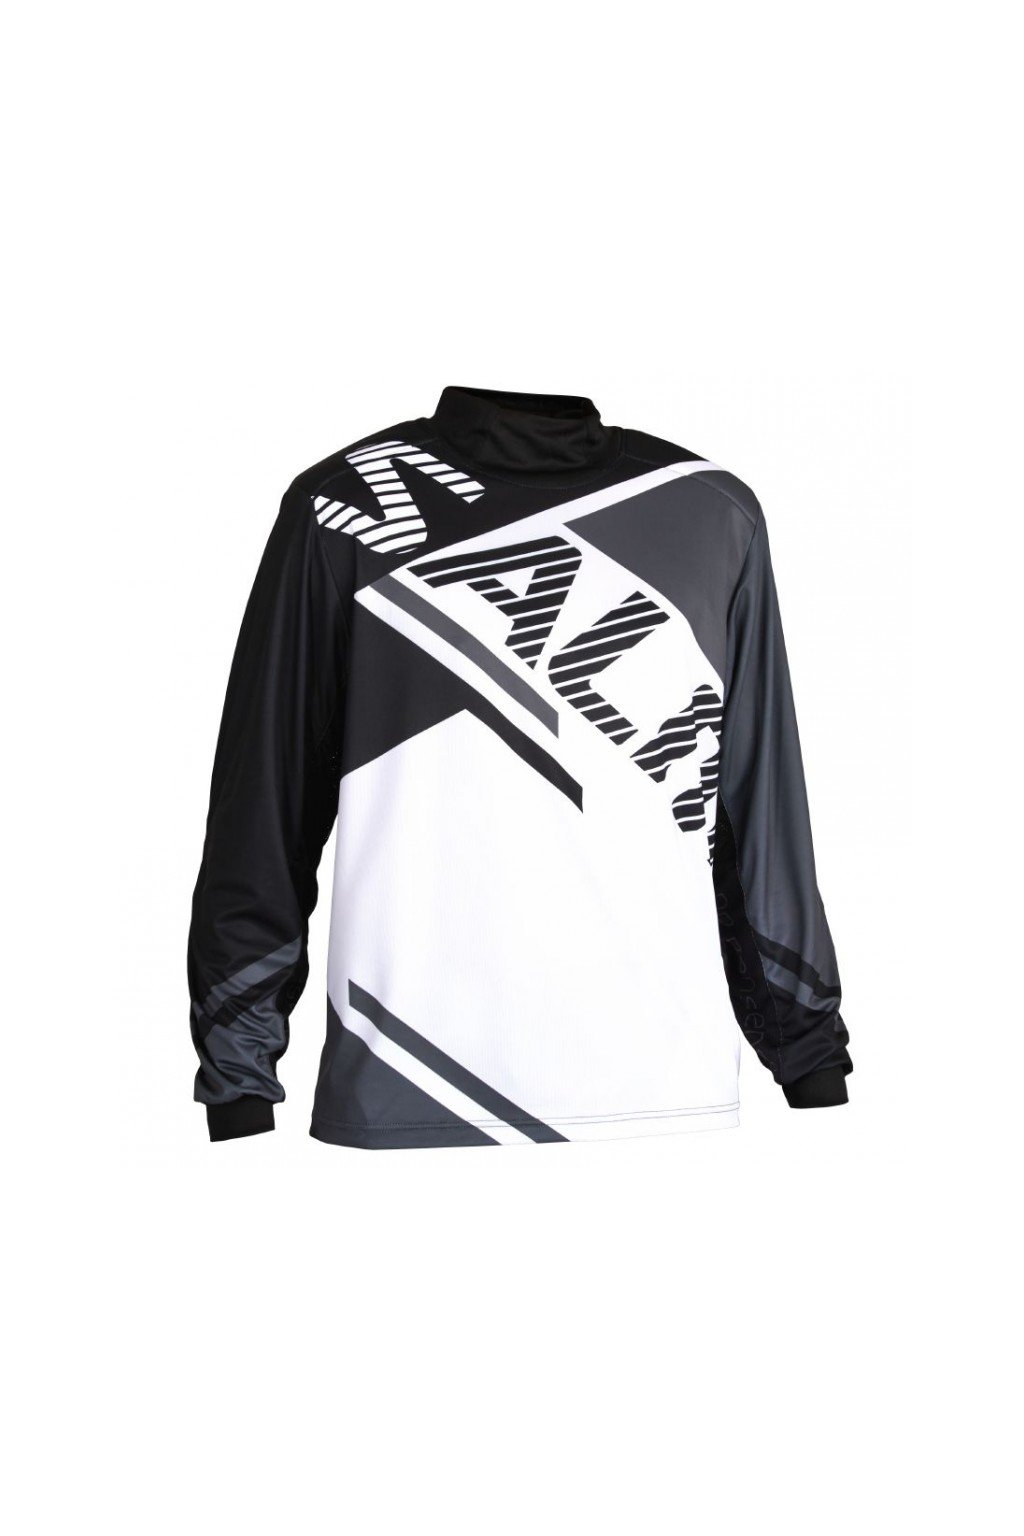 SALMING Atilla Jersey SR Grey/Black